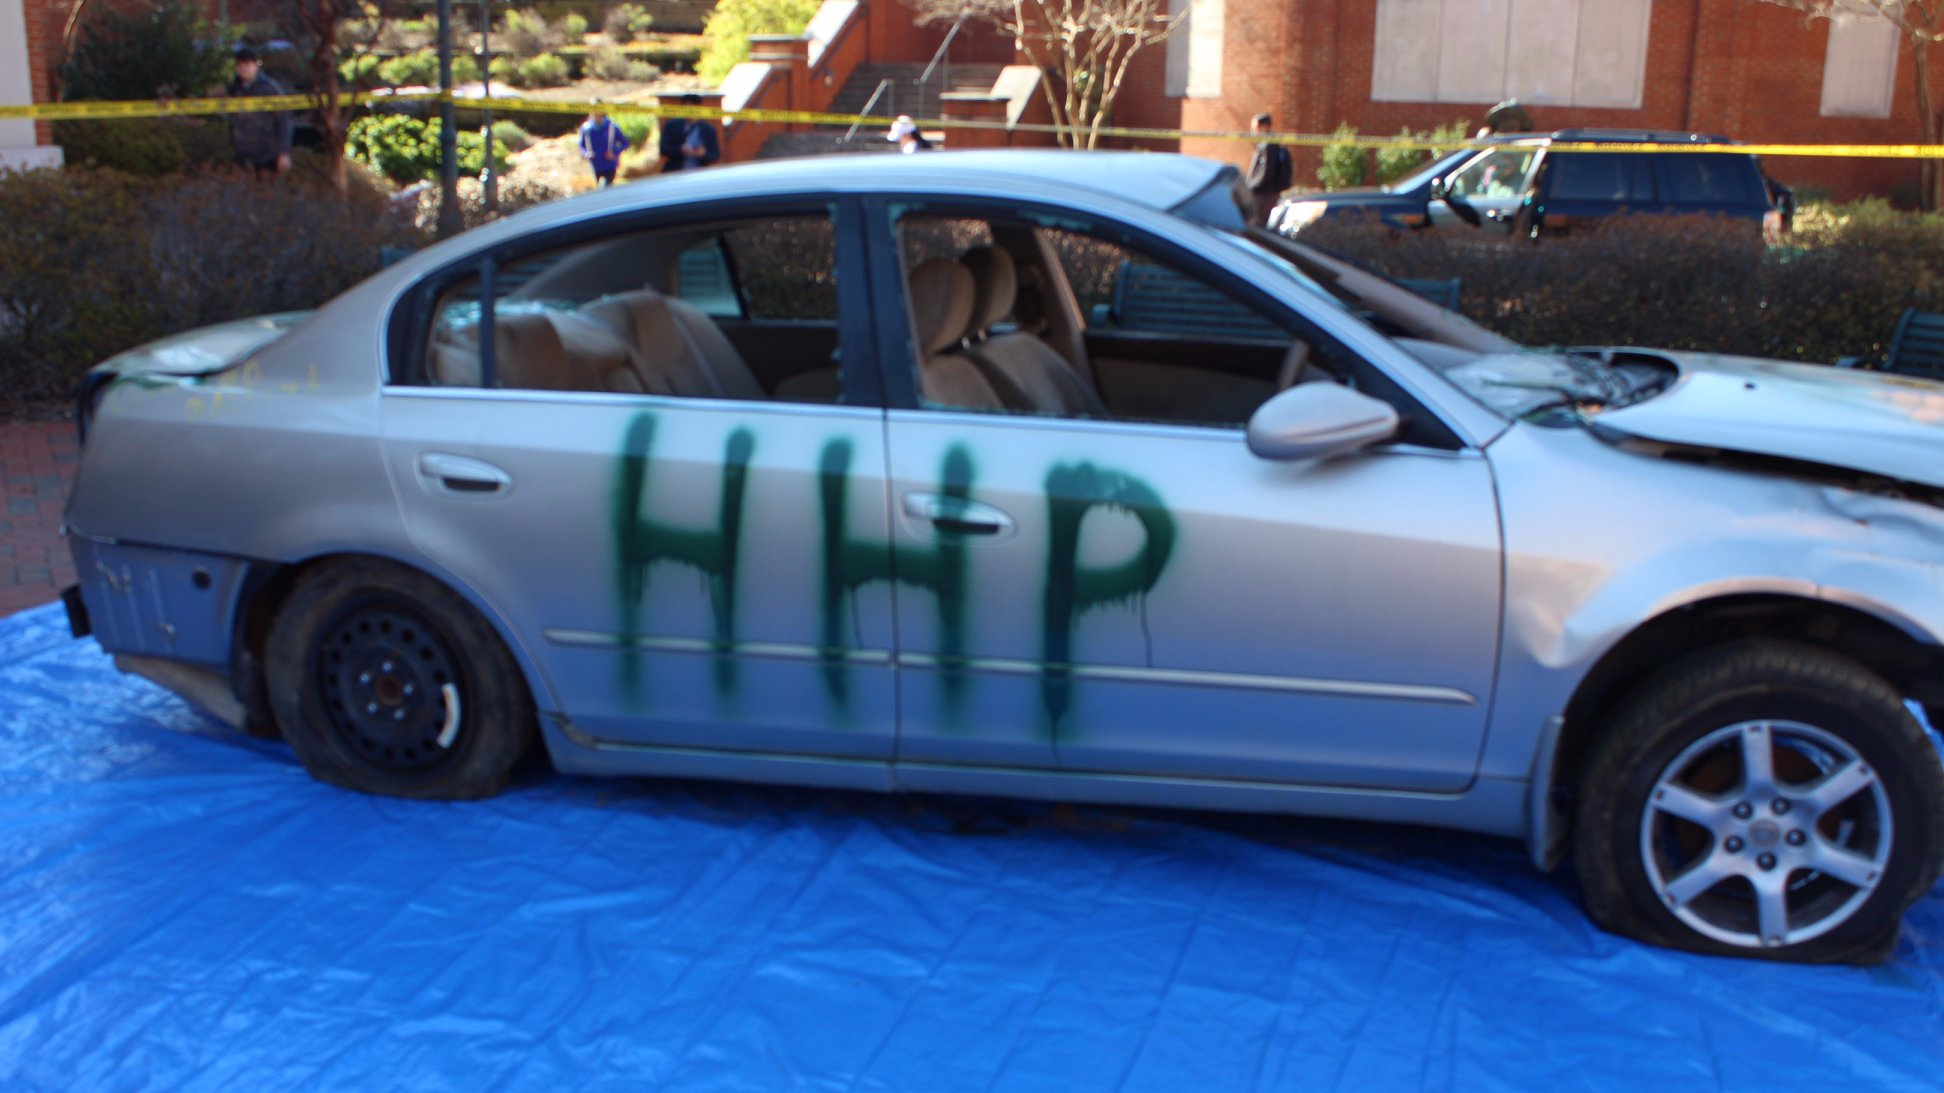 Car Parts NC donated one of their junk cars so that we could raise money through a car smash fundraising event.